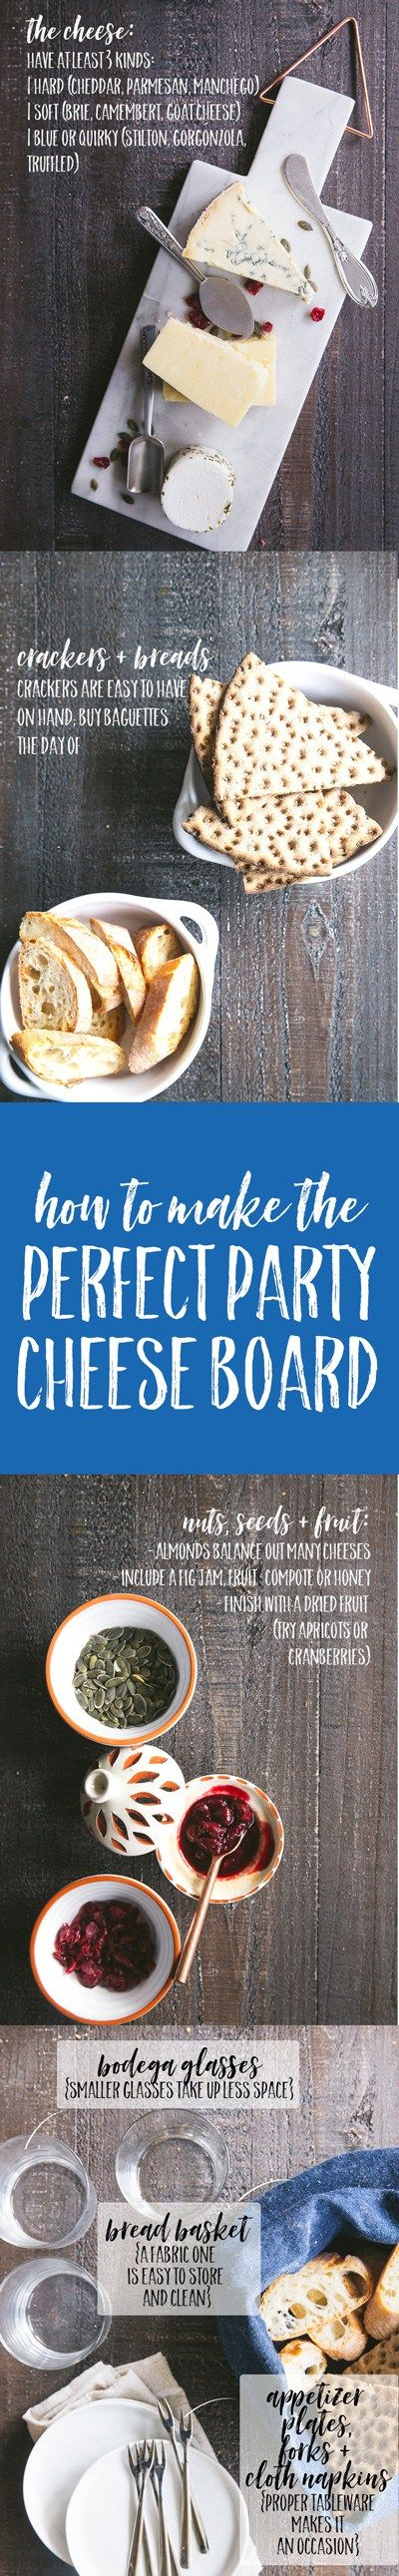 How To Make The Perfect Party Cheese Board  Grits & Chopsticks